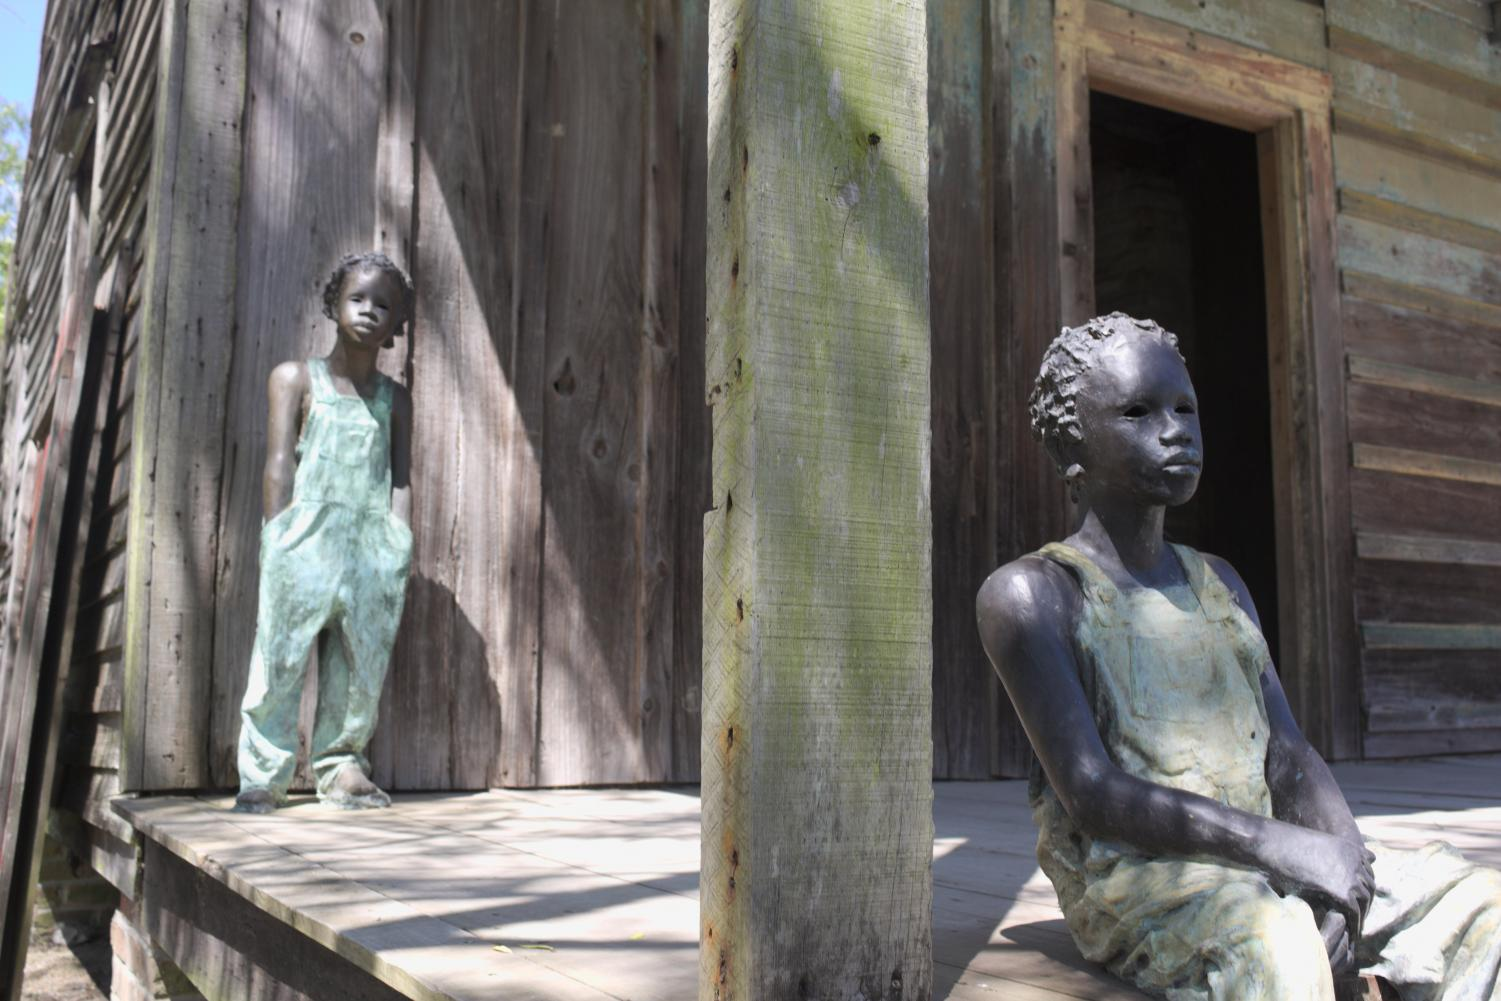 Statues resembling children born into slavery overlook Whitney Plantation from the porch of the slave quarters they once lived in. ©2018 Max Perrenoud